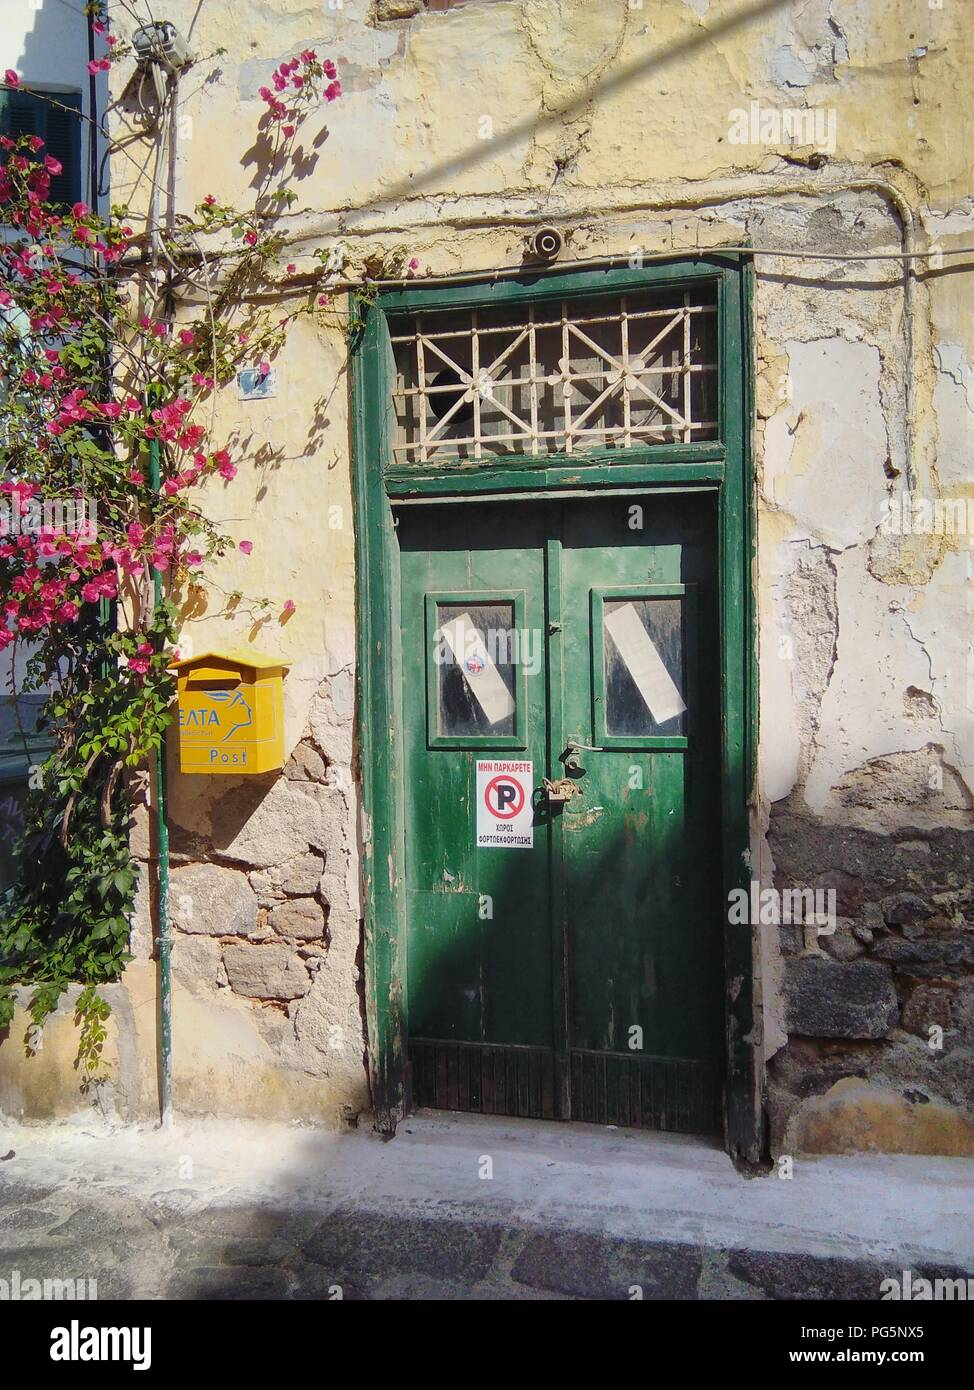 Greece, the isle of Paros.  An old beat up Green door - Stock Image